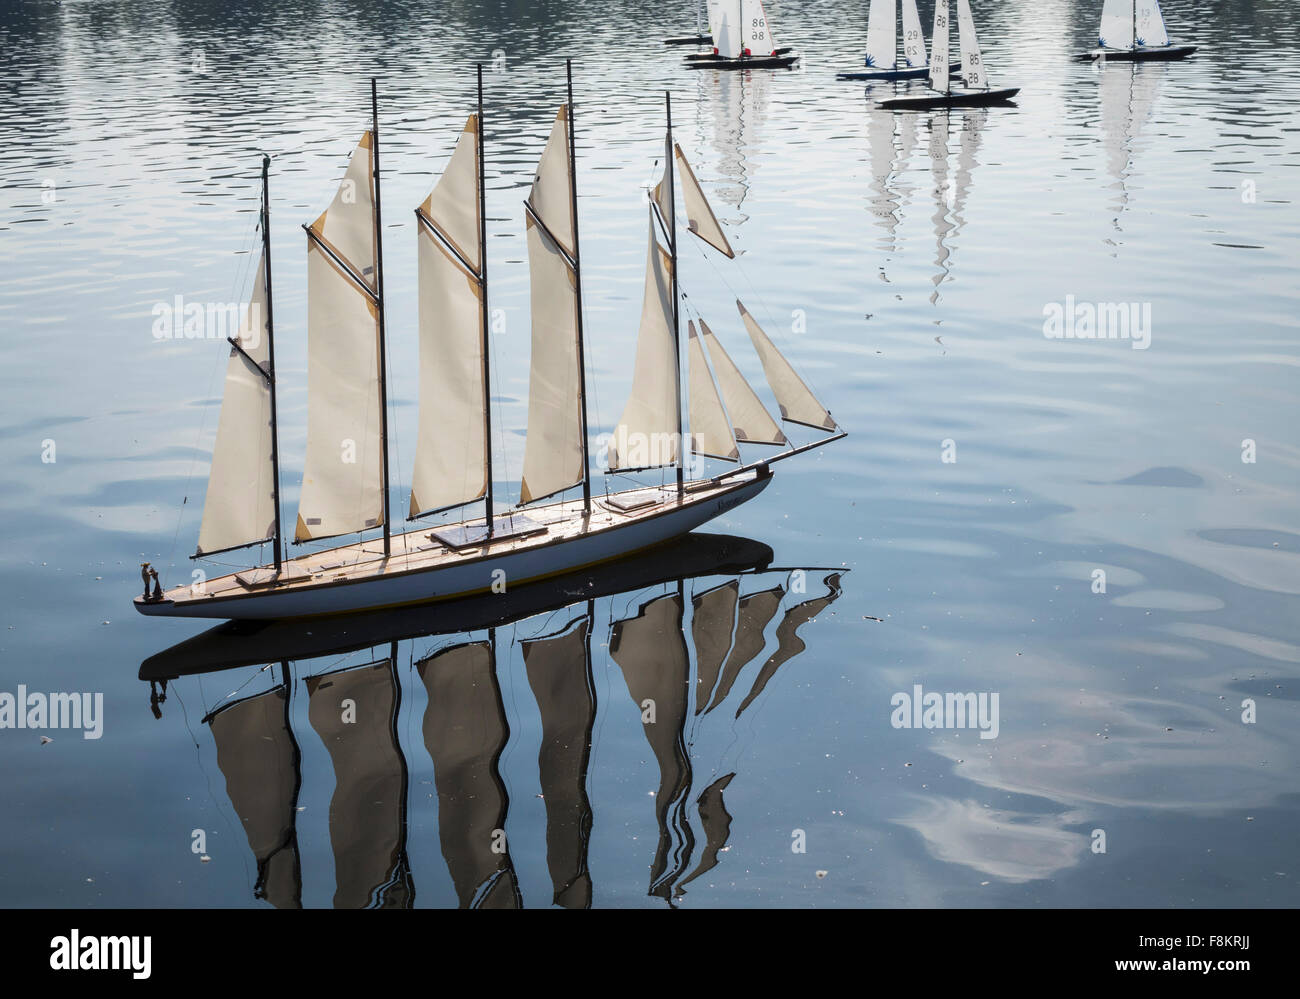 Model yacht sailing on a pond - Stock Image